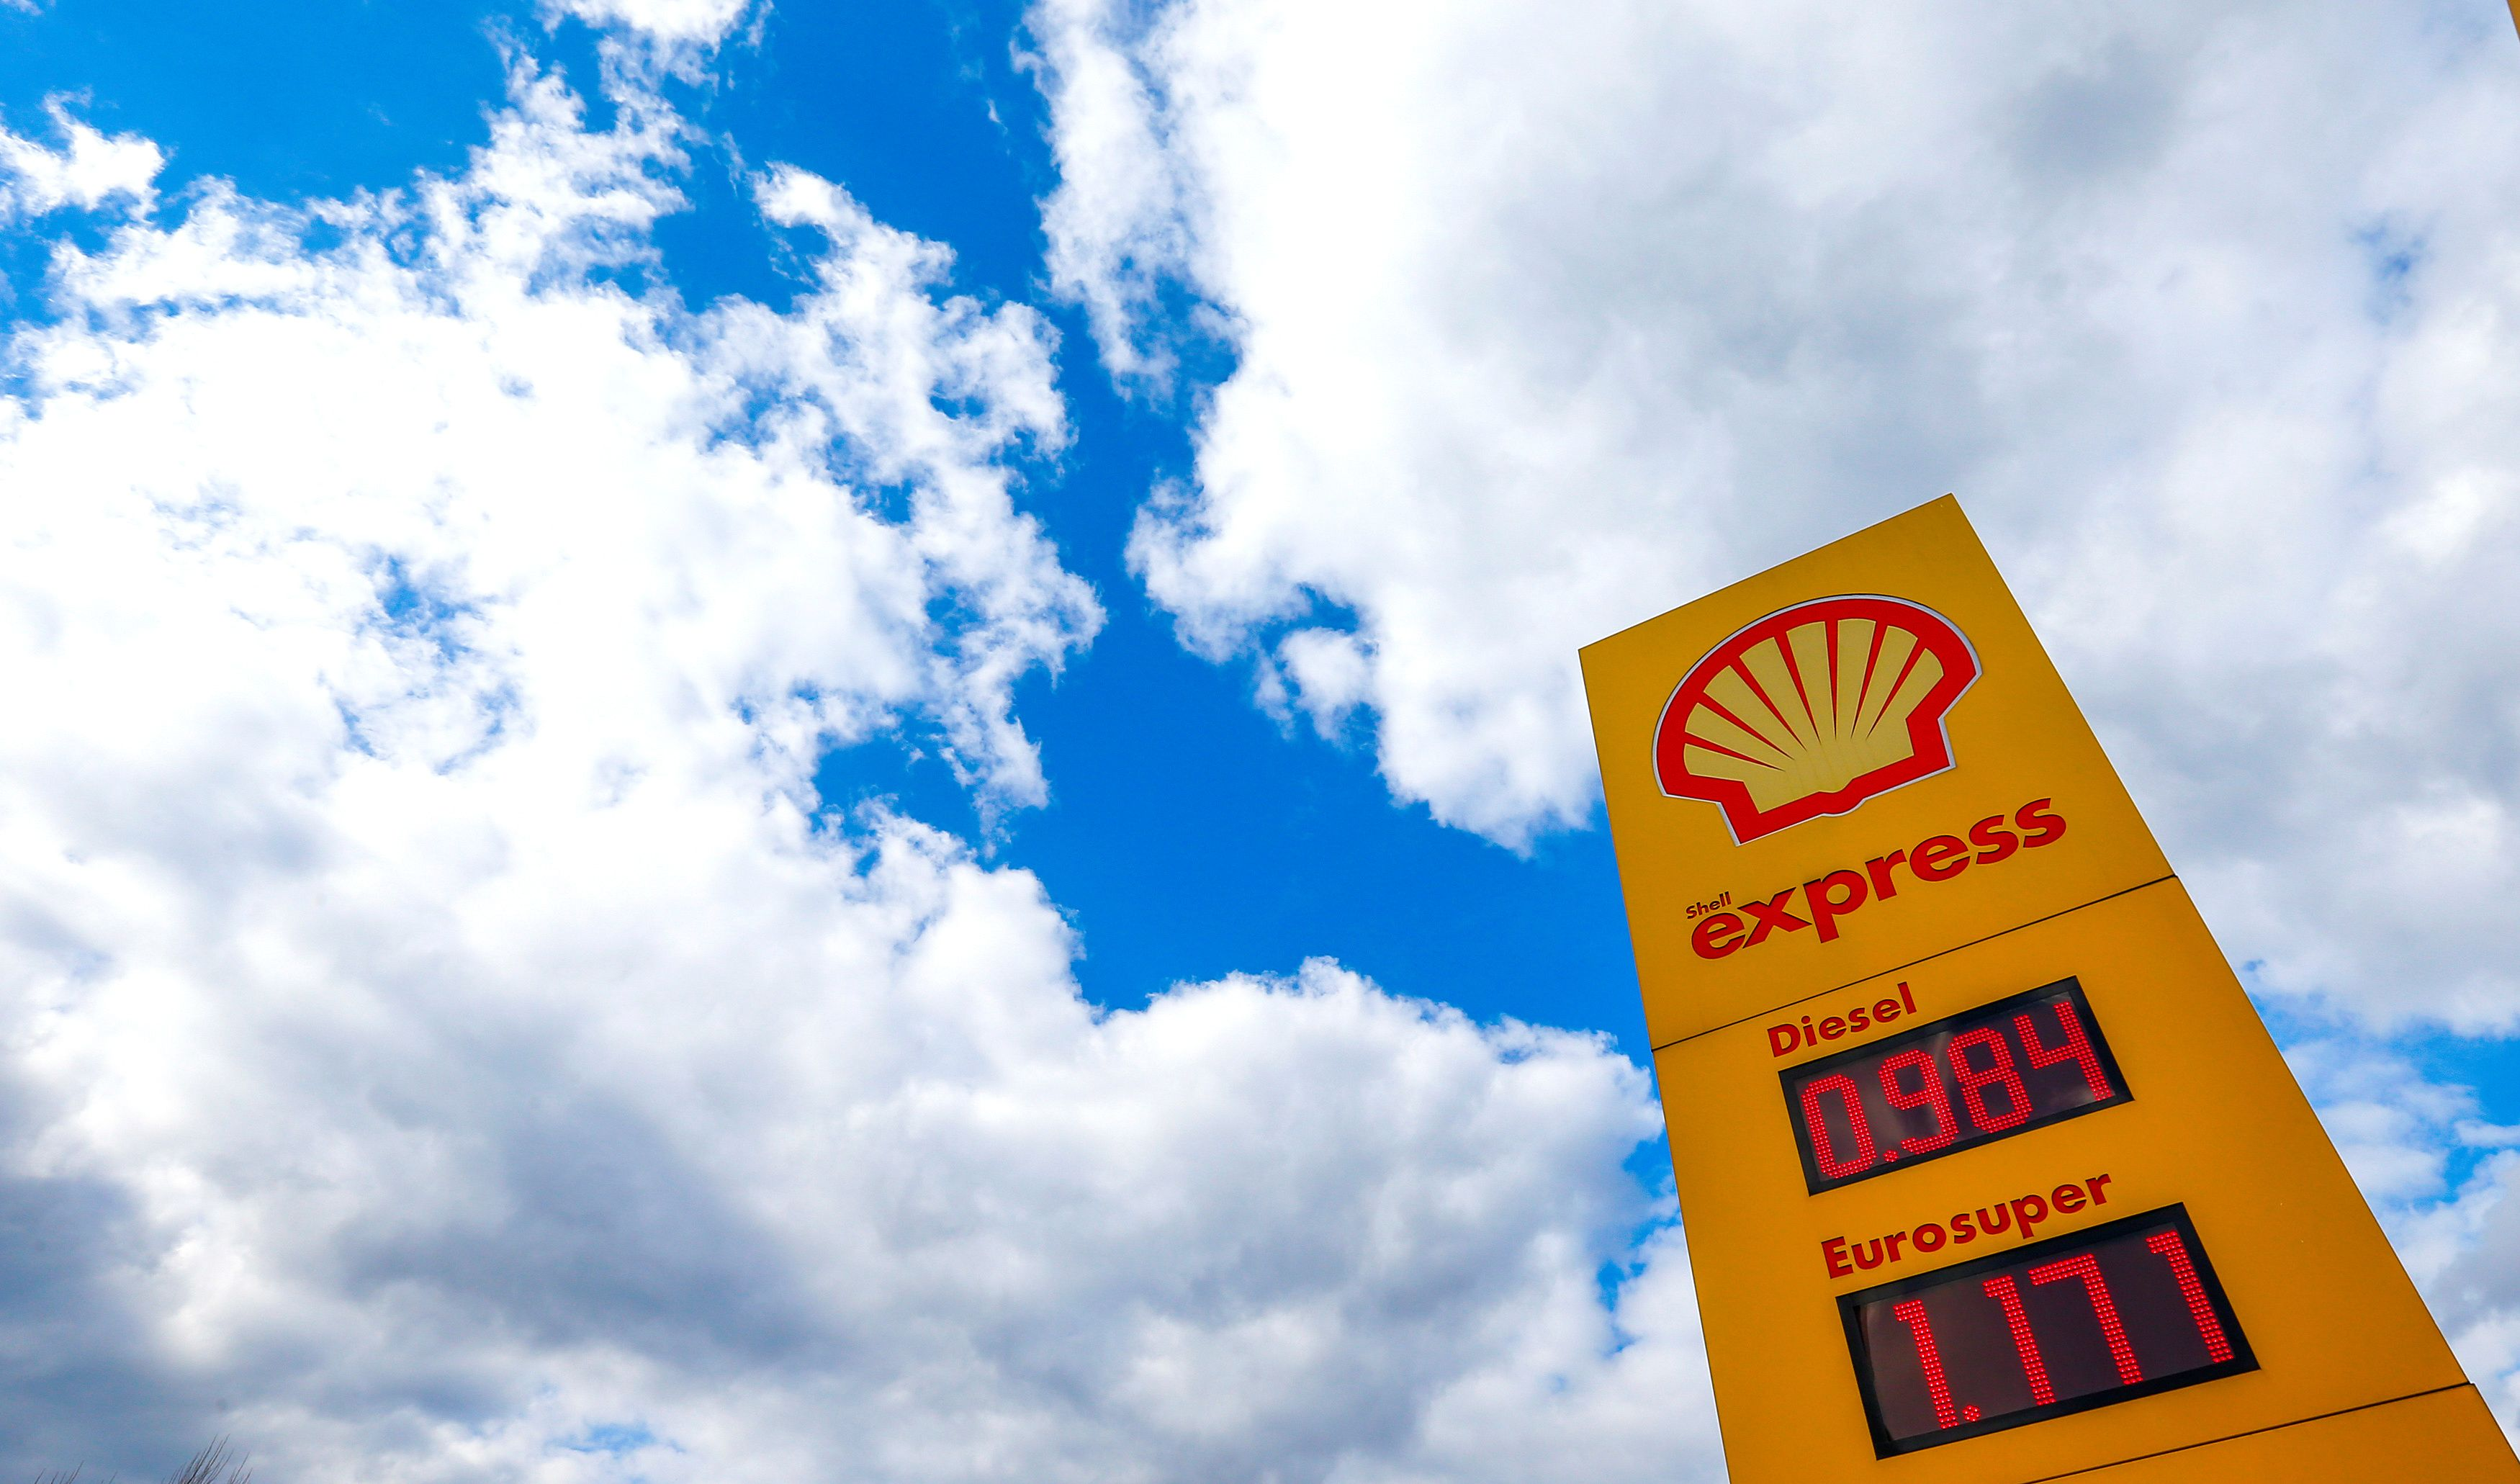 The logo of Royal Dutch Shell is seen at a petrol station in Sint-Pieters-Leeuw, Belgium, April 4, 2016. REUTERS/Yves Herman/File Photo